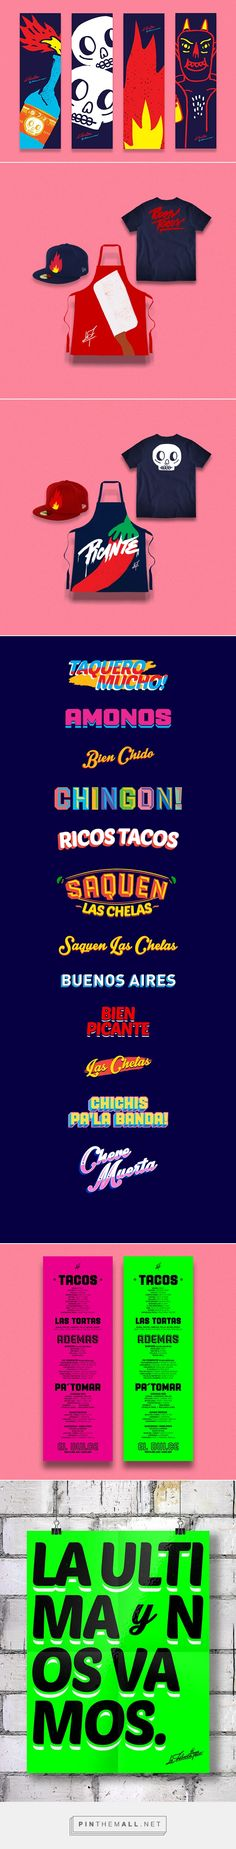 La Fabrica del Taco restaurant branding - Grits + GridsGrits + Grids - created via http://pinthemall.net